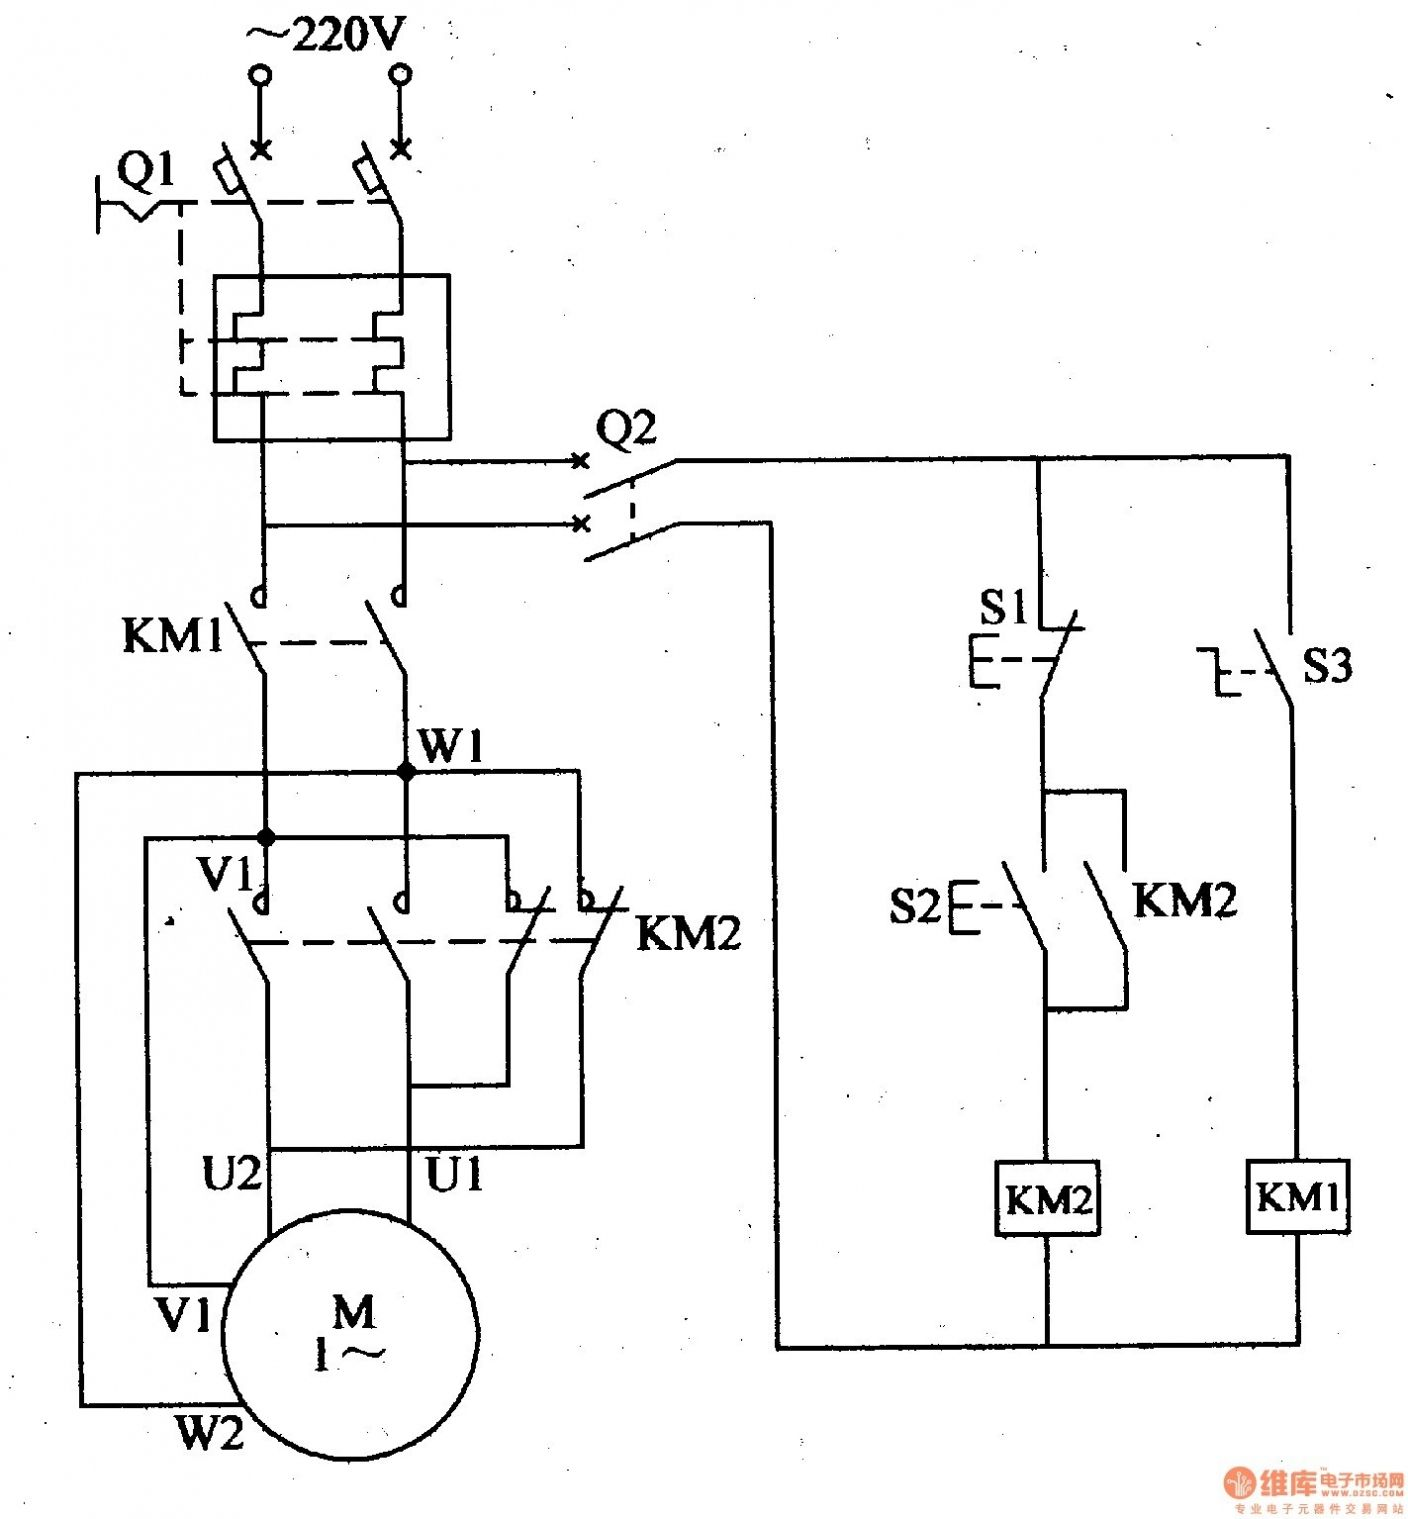 Wiring Diagram Motor Fresh Single Phase Motor Starter